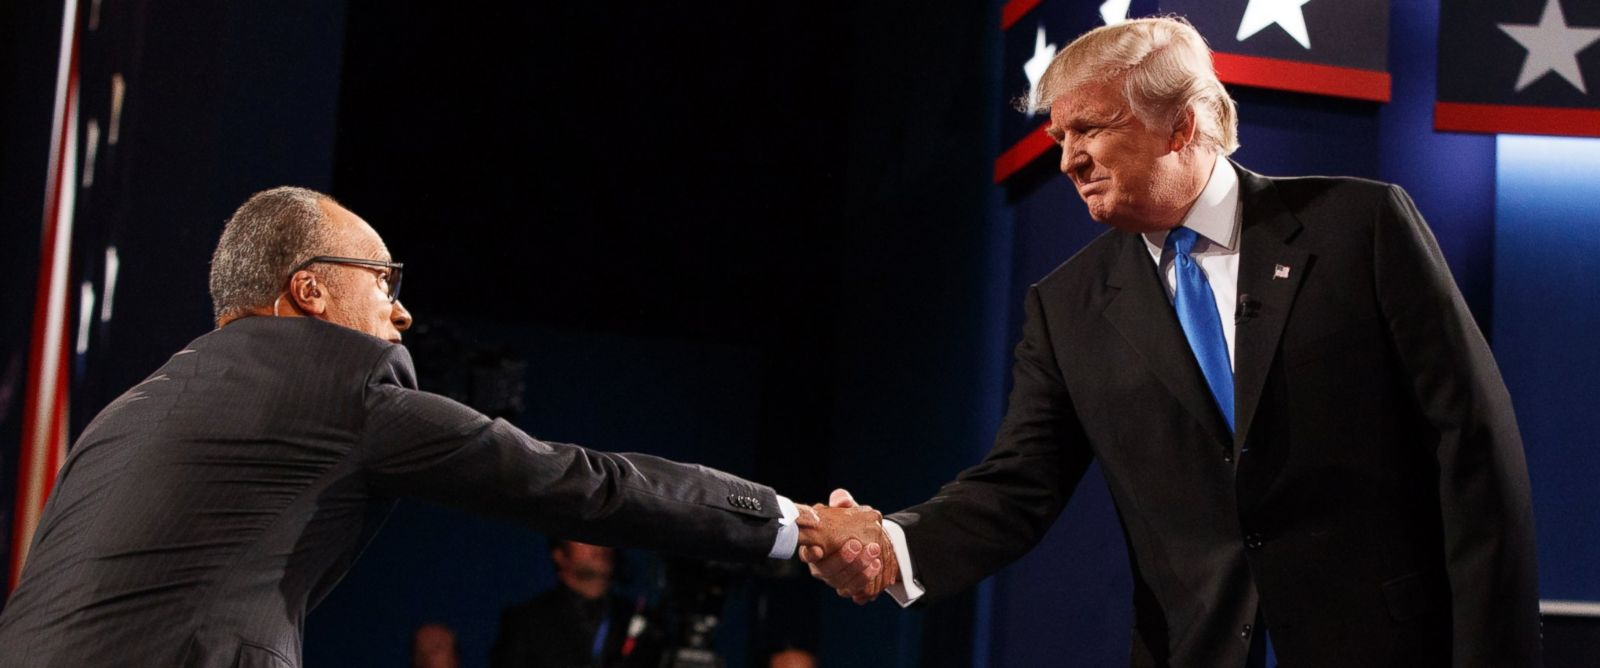 PHOTO: Republican presidential candidate Donald Trump shakes hands with moderator Lester Holt during the first presidential debate at Hofstra University, Sept. 26, 2016, in Hempstead, N.Y.